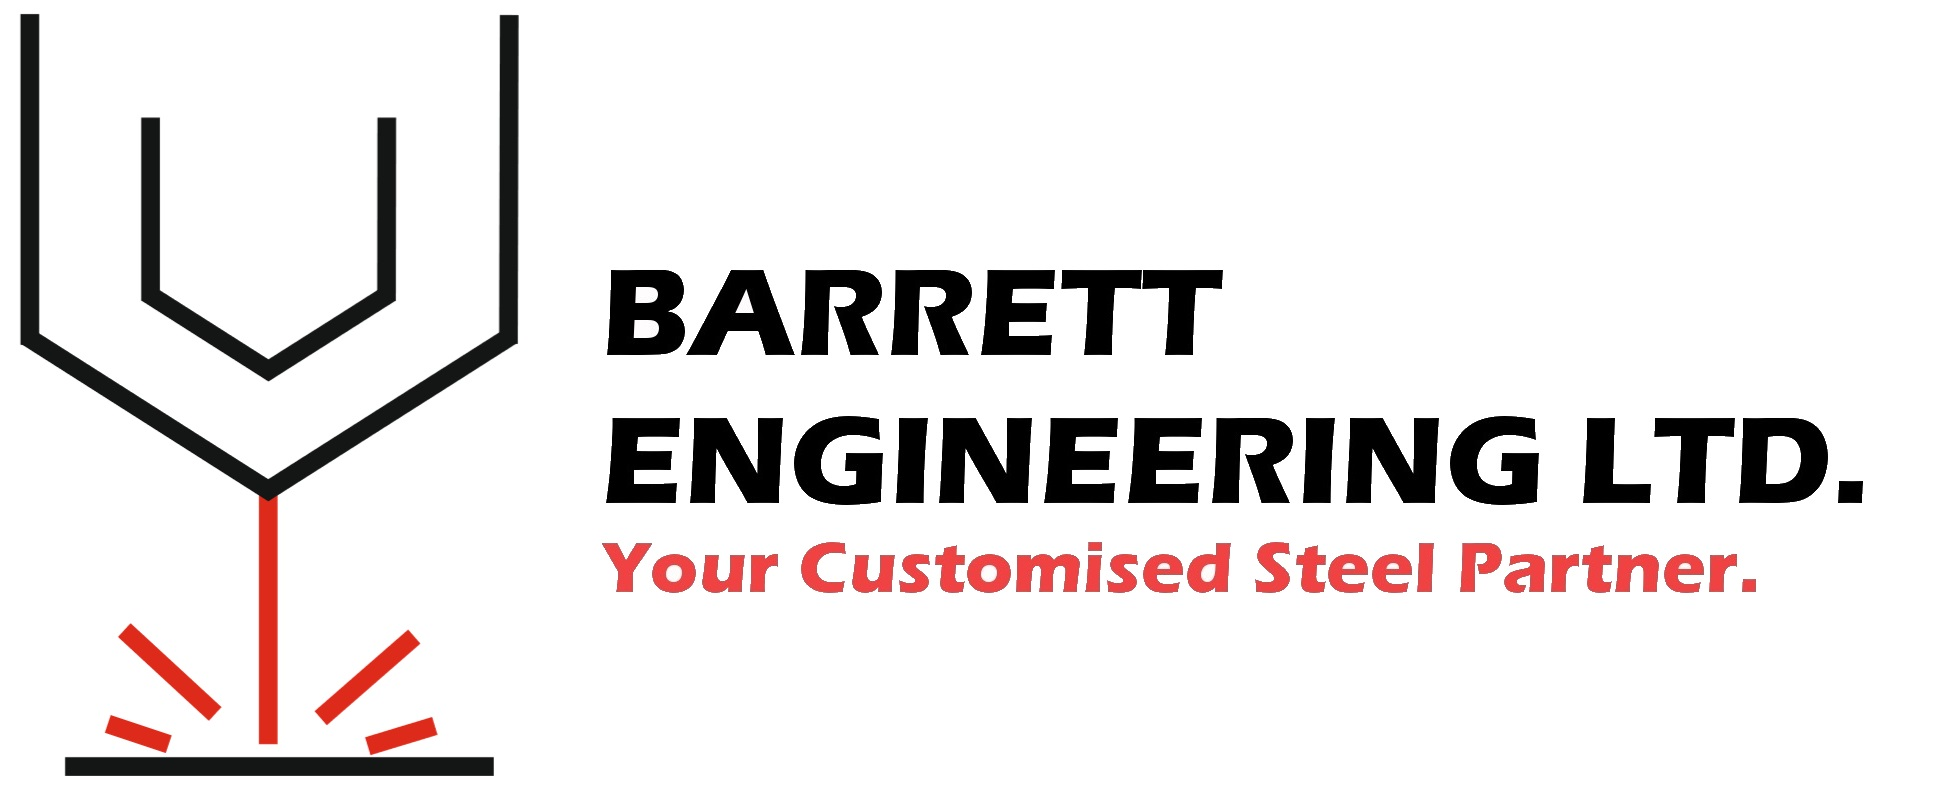 Barrett Engineering Specialist Steel Limerick